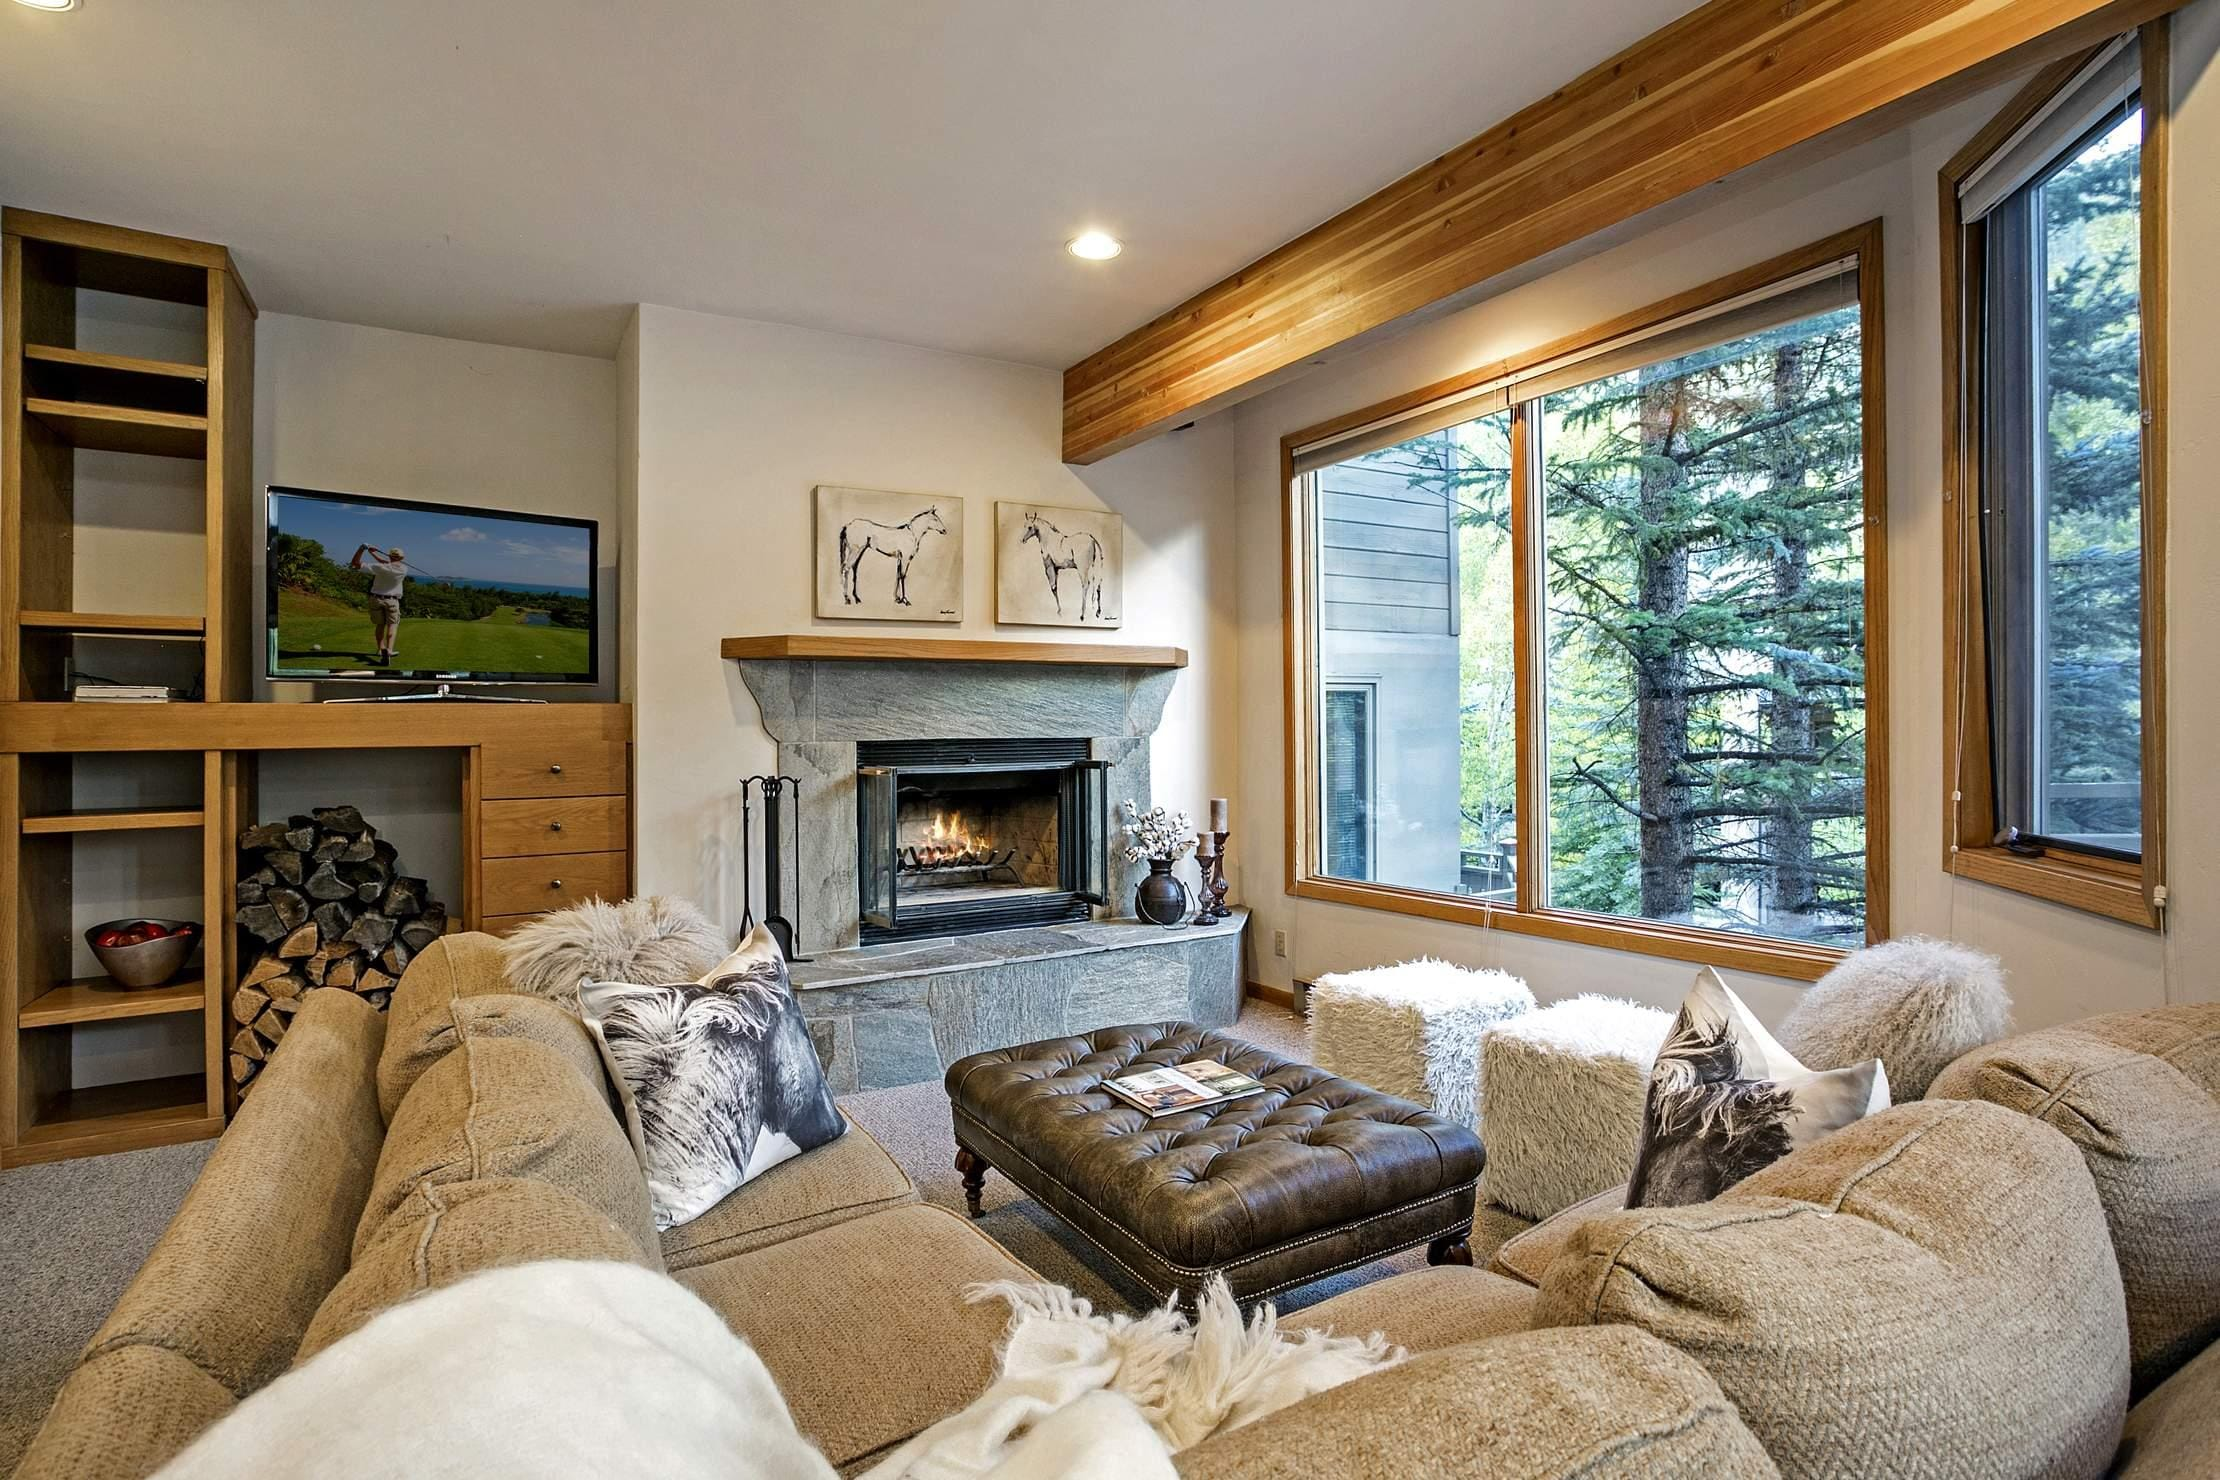 Welcome to Vail! This home is professionally managed by TurnKey Vacation Rentals.